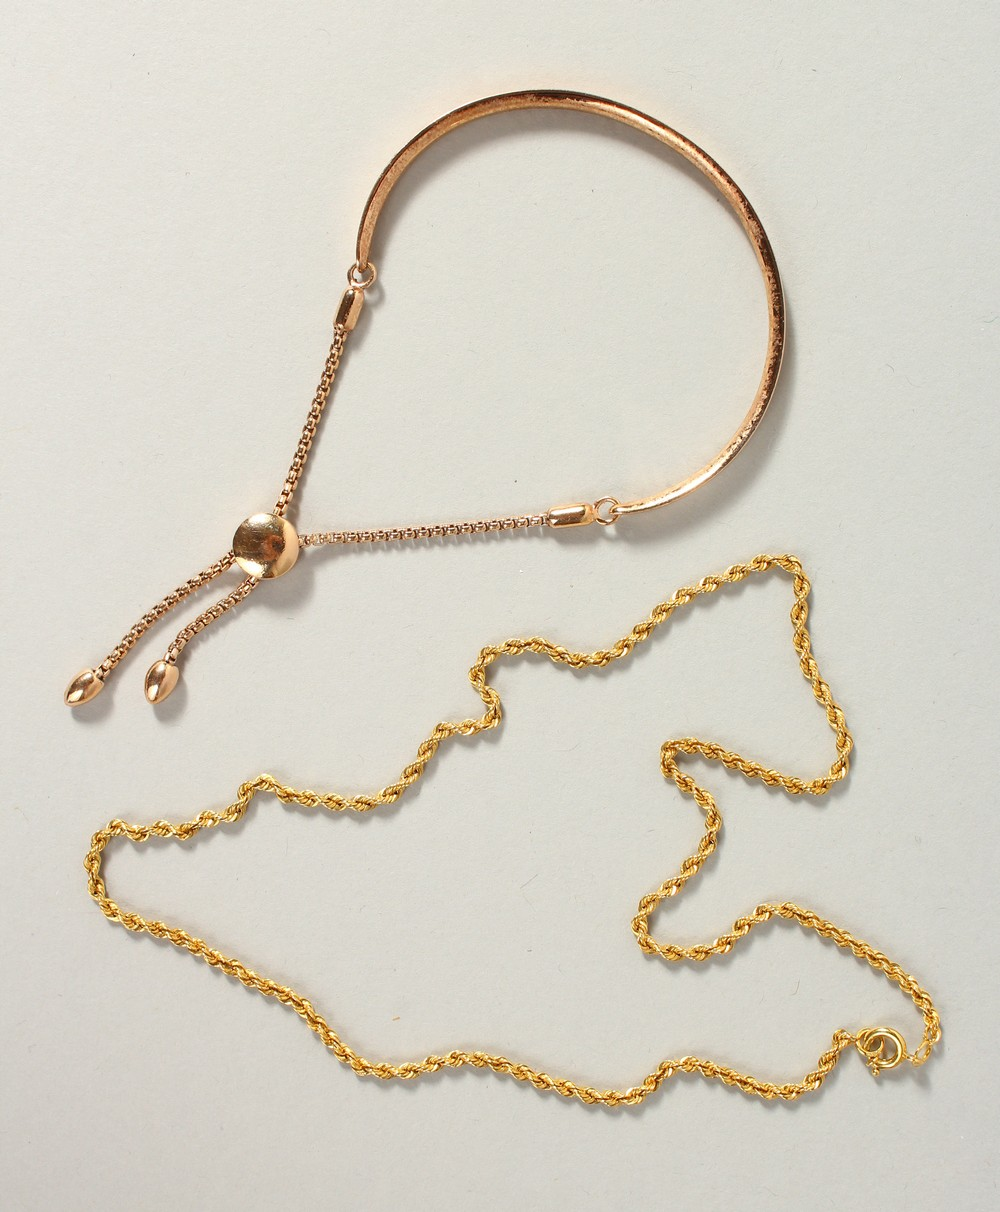 Lot 1749 - A 9CT GOLD BRACELET AND CHAIN, 22gms.